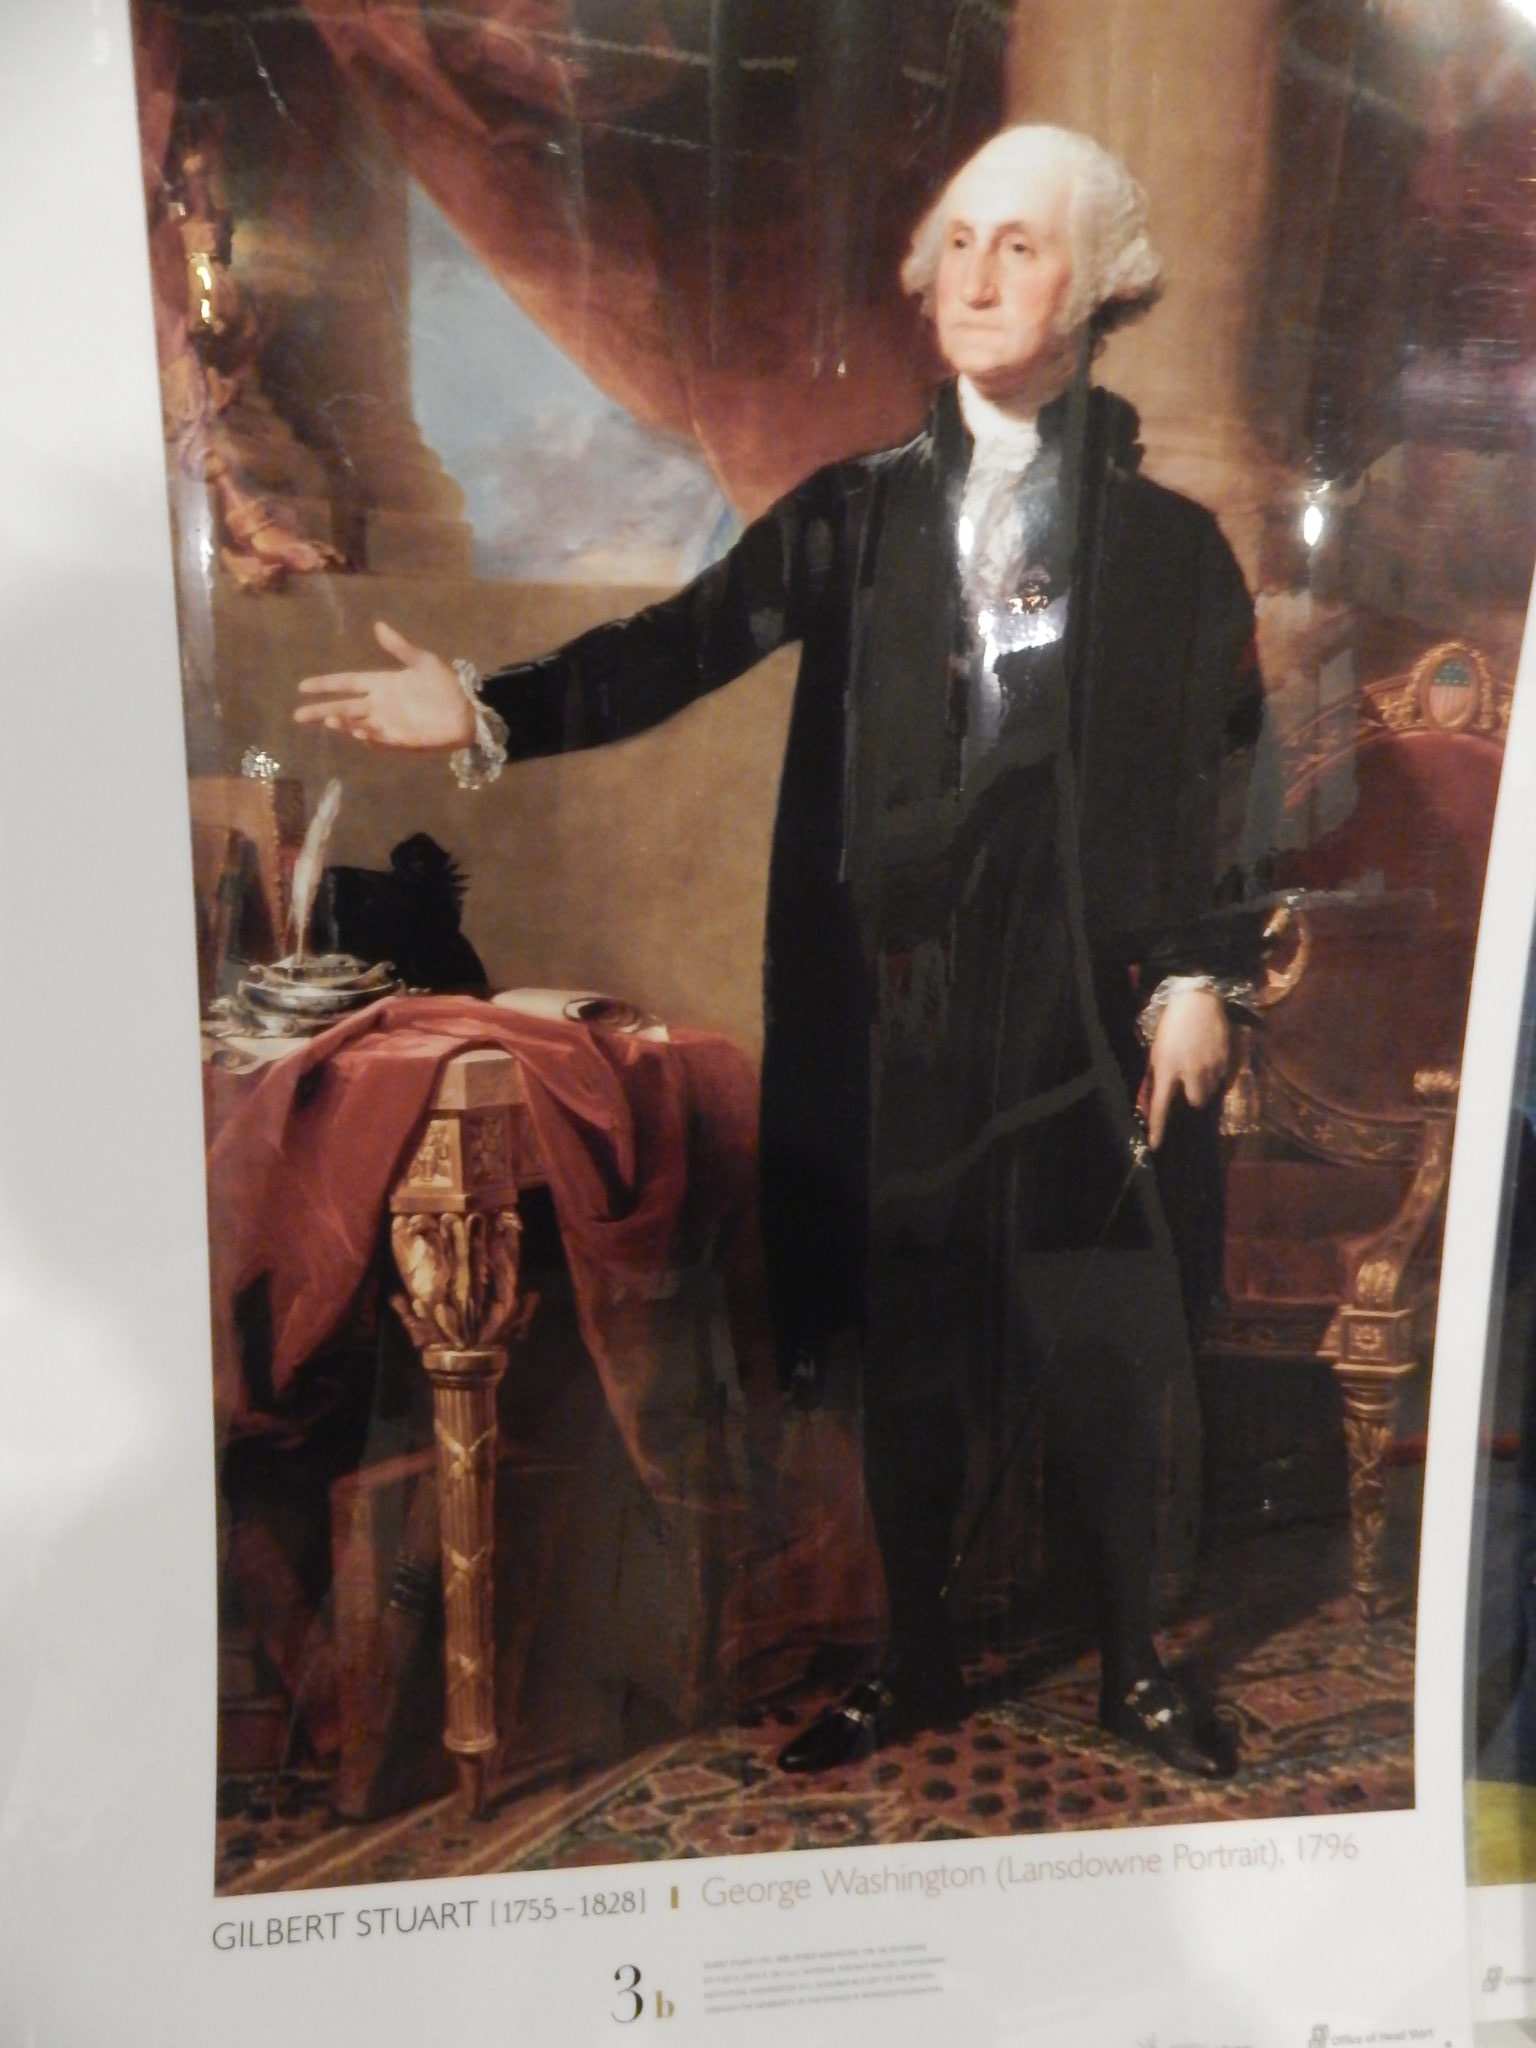 photo of Gilbert Stuart's painting of George Washington, 1796